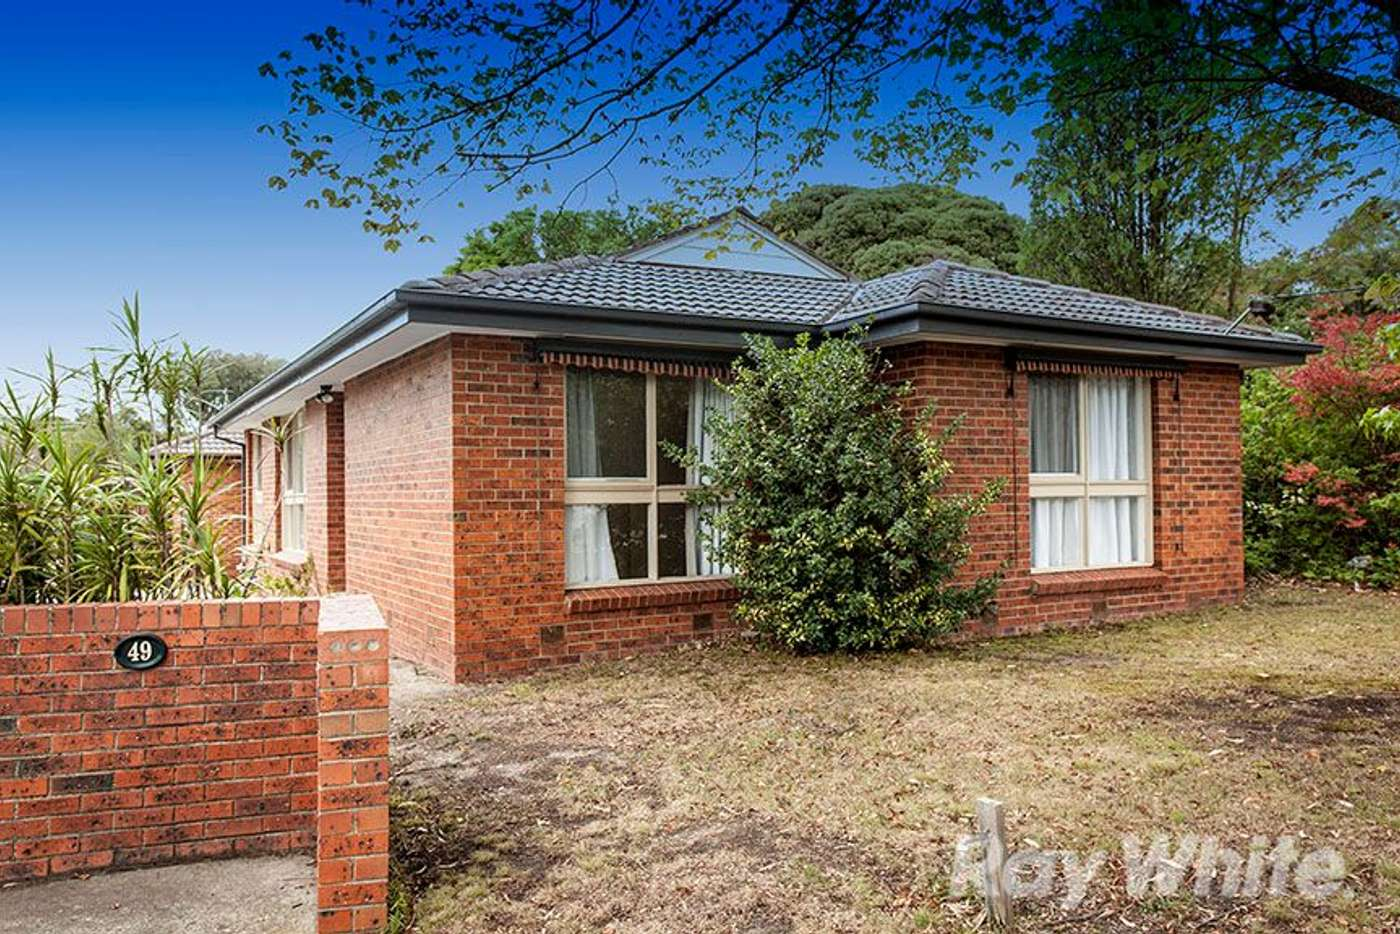 Main view of Homely unit listing, 1/49 McCulloch Street, Nunawading VIC 3131